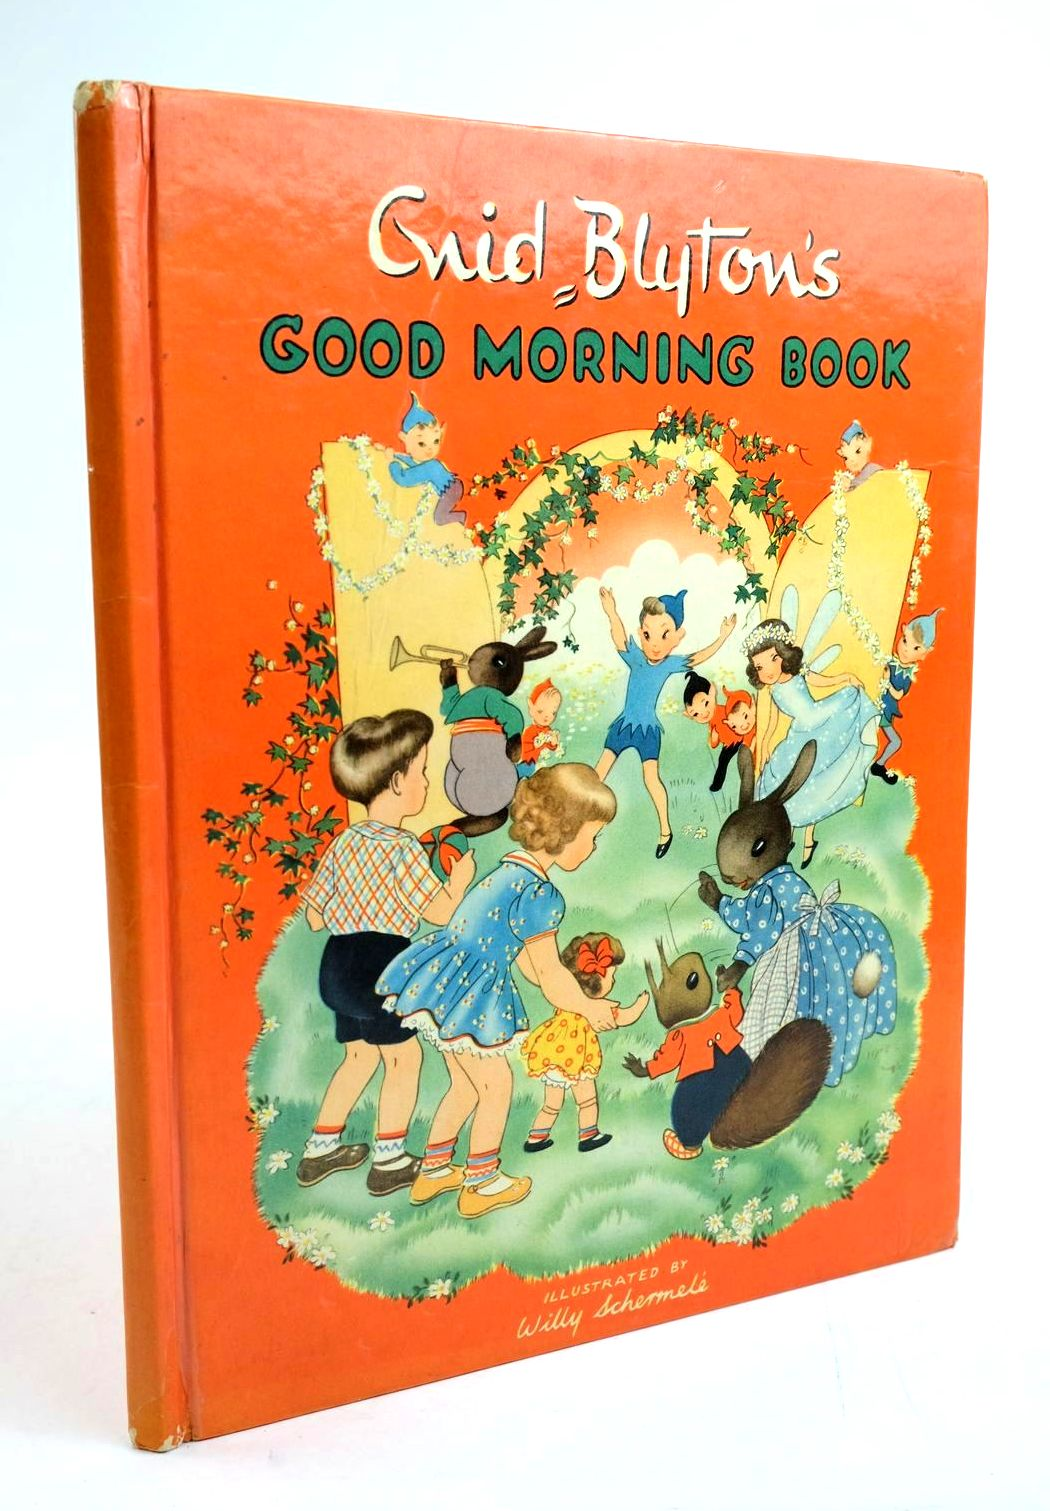 Photo of ENID BLYTON'S GOOD MORNING BOOK- Stock Number: 1321634